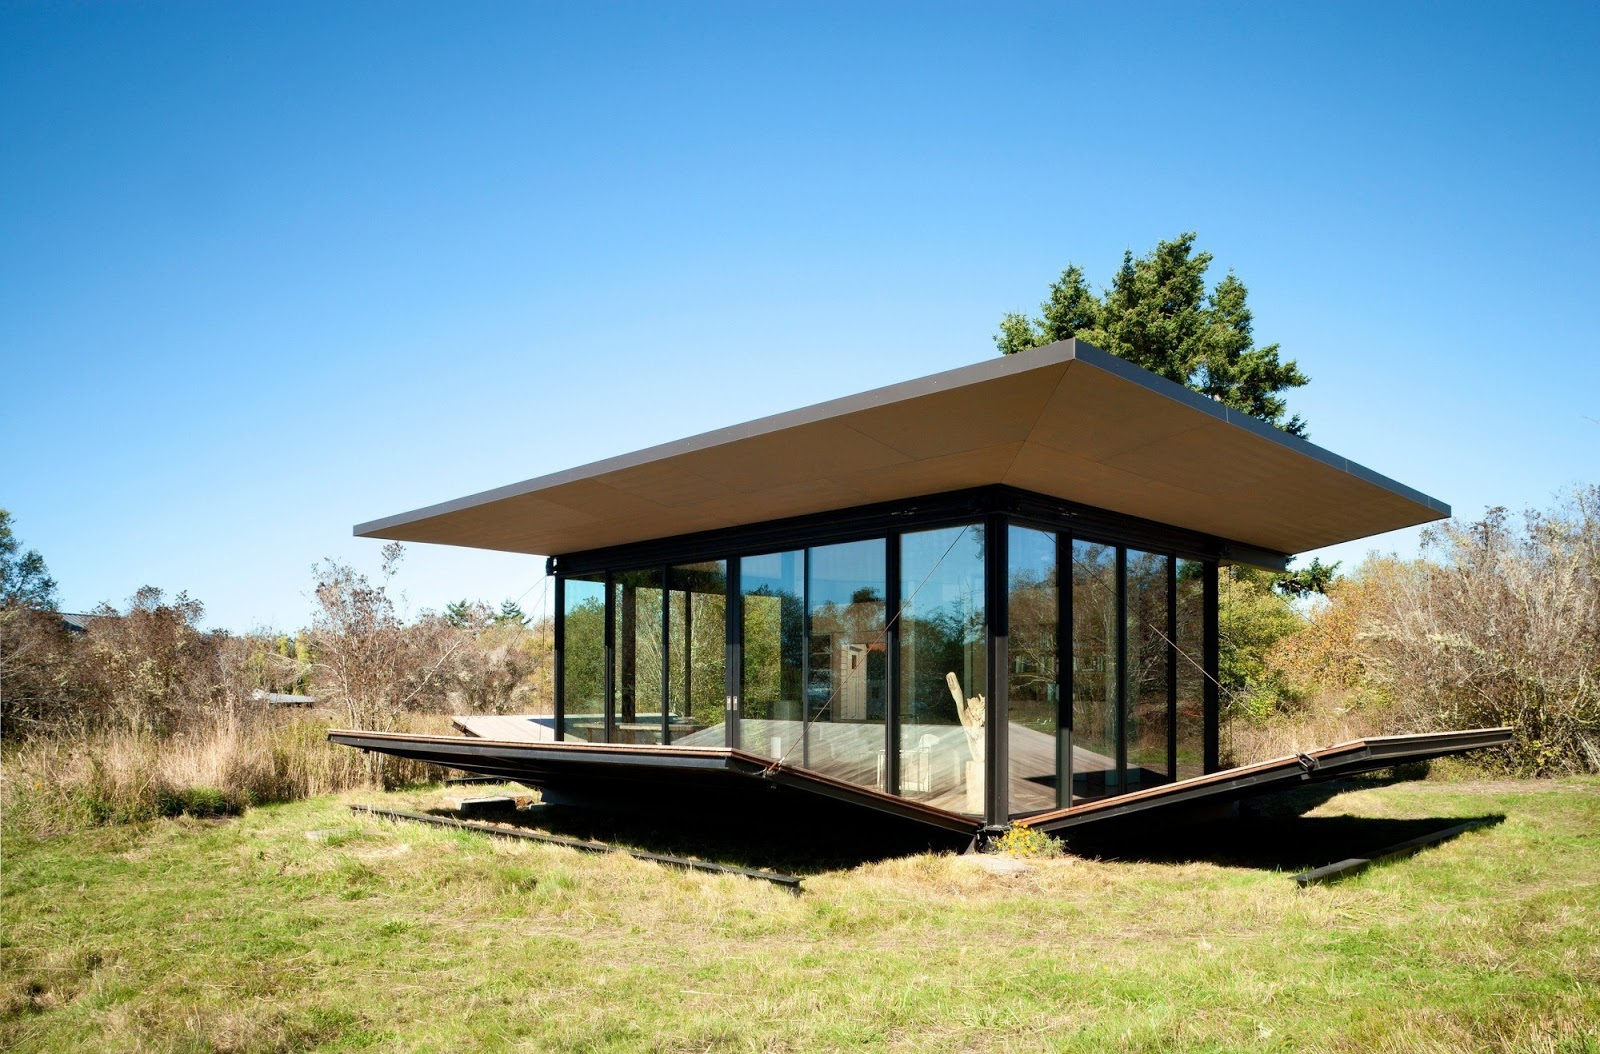 TINY HOUSE TOWN The False Bay Writers Cabin